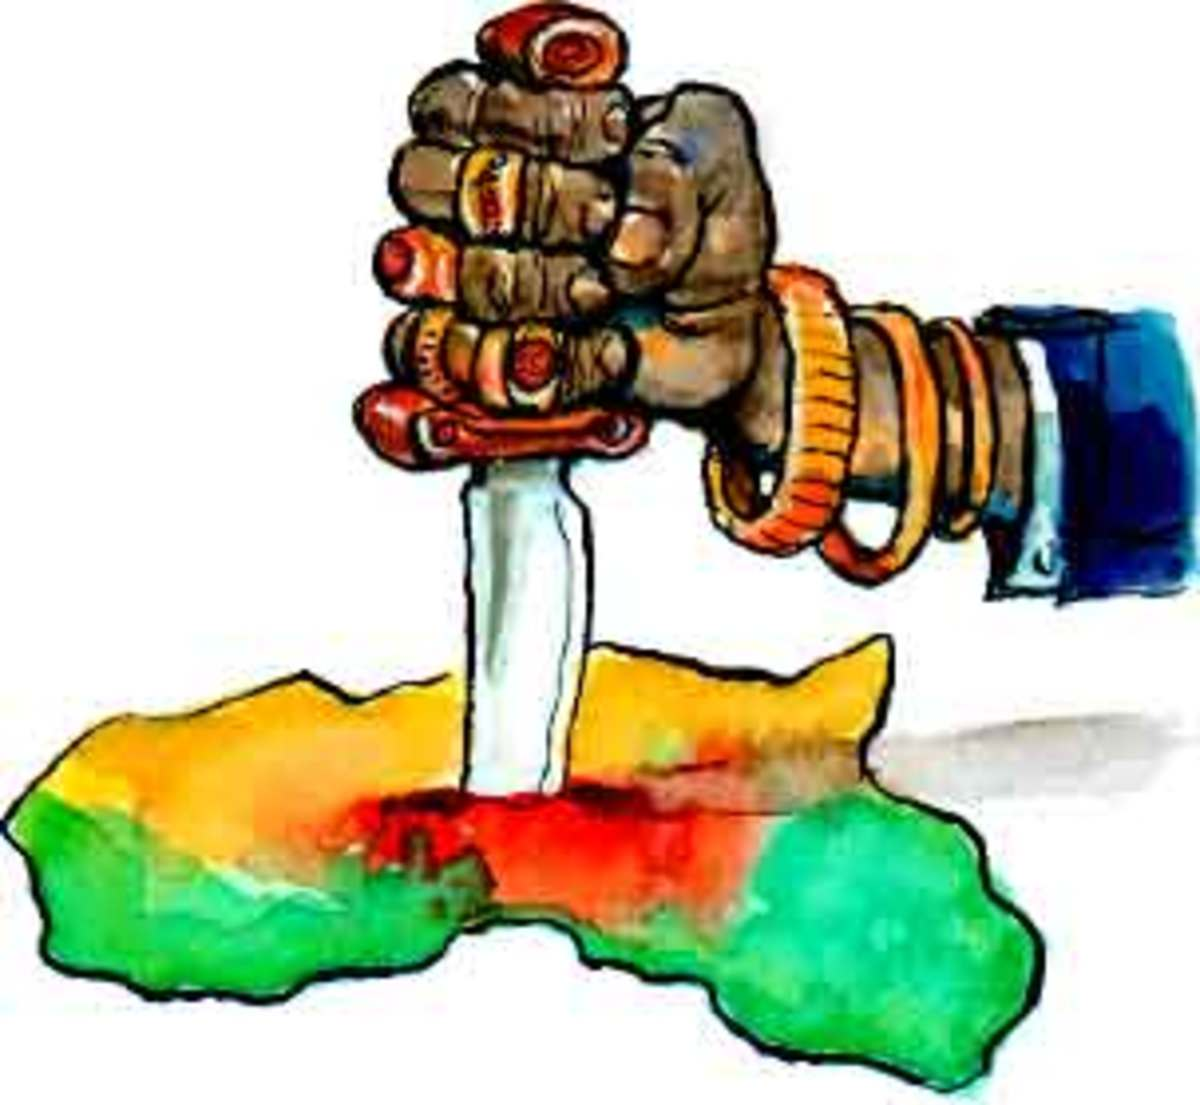 The carving and decapitation of Africa by the indigenous elite and capitalists